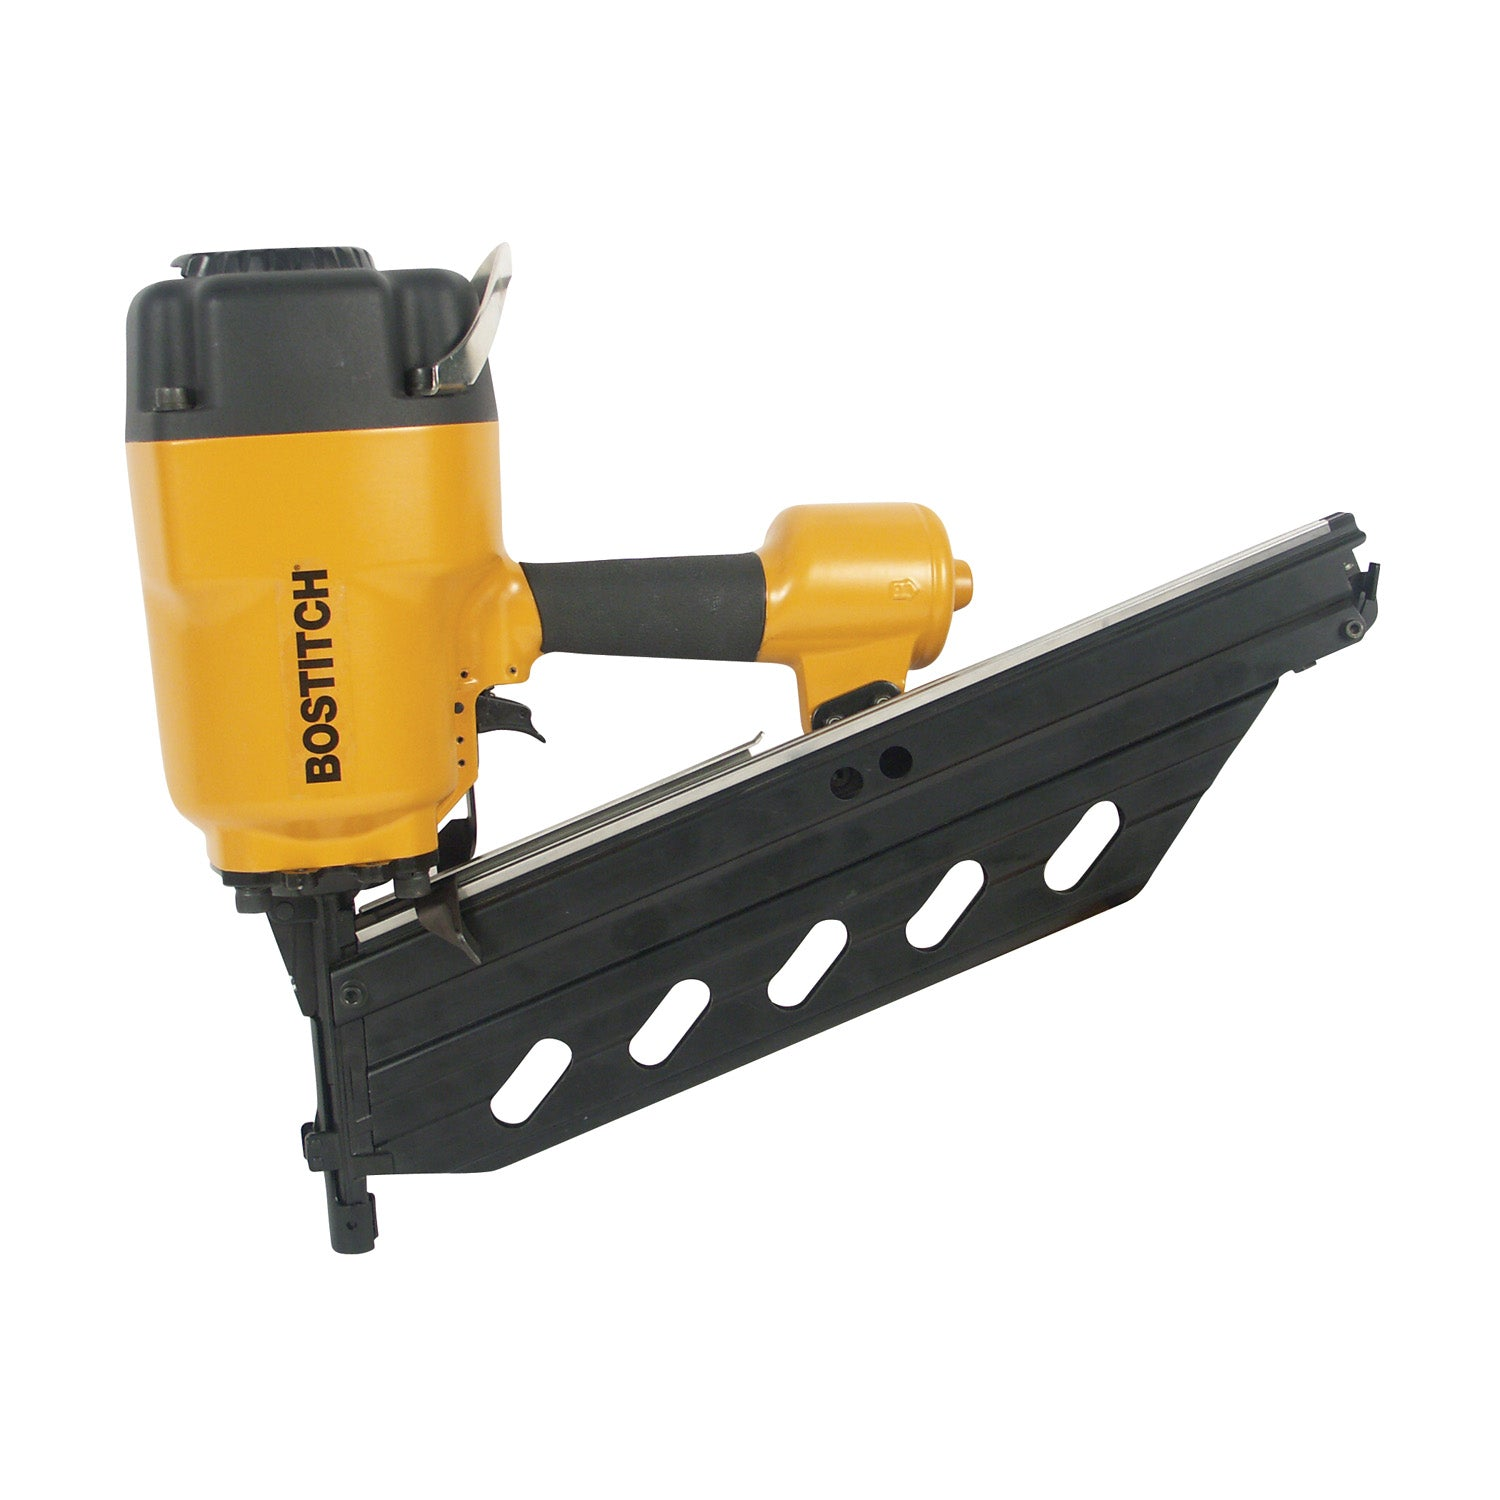 Industrial Stick Framing Nailers – Bostitch Industrial